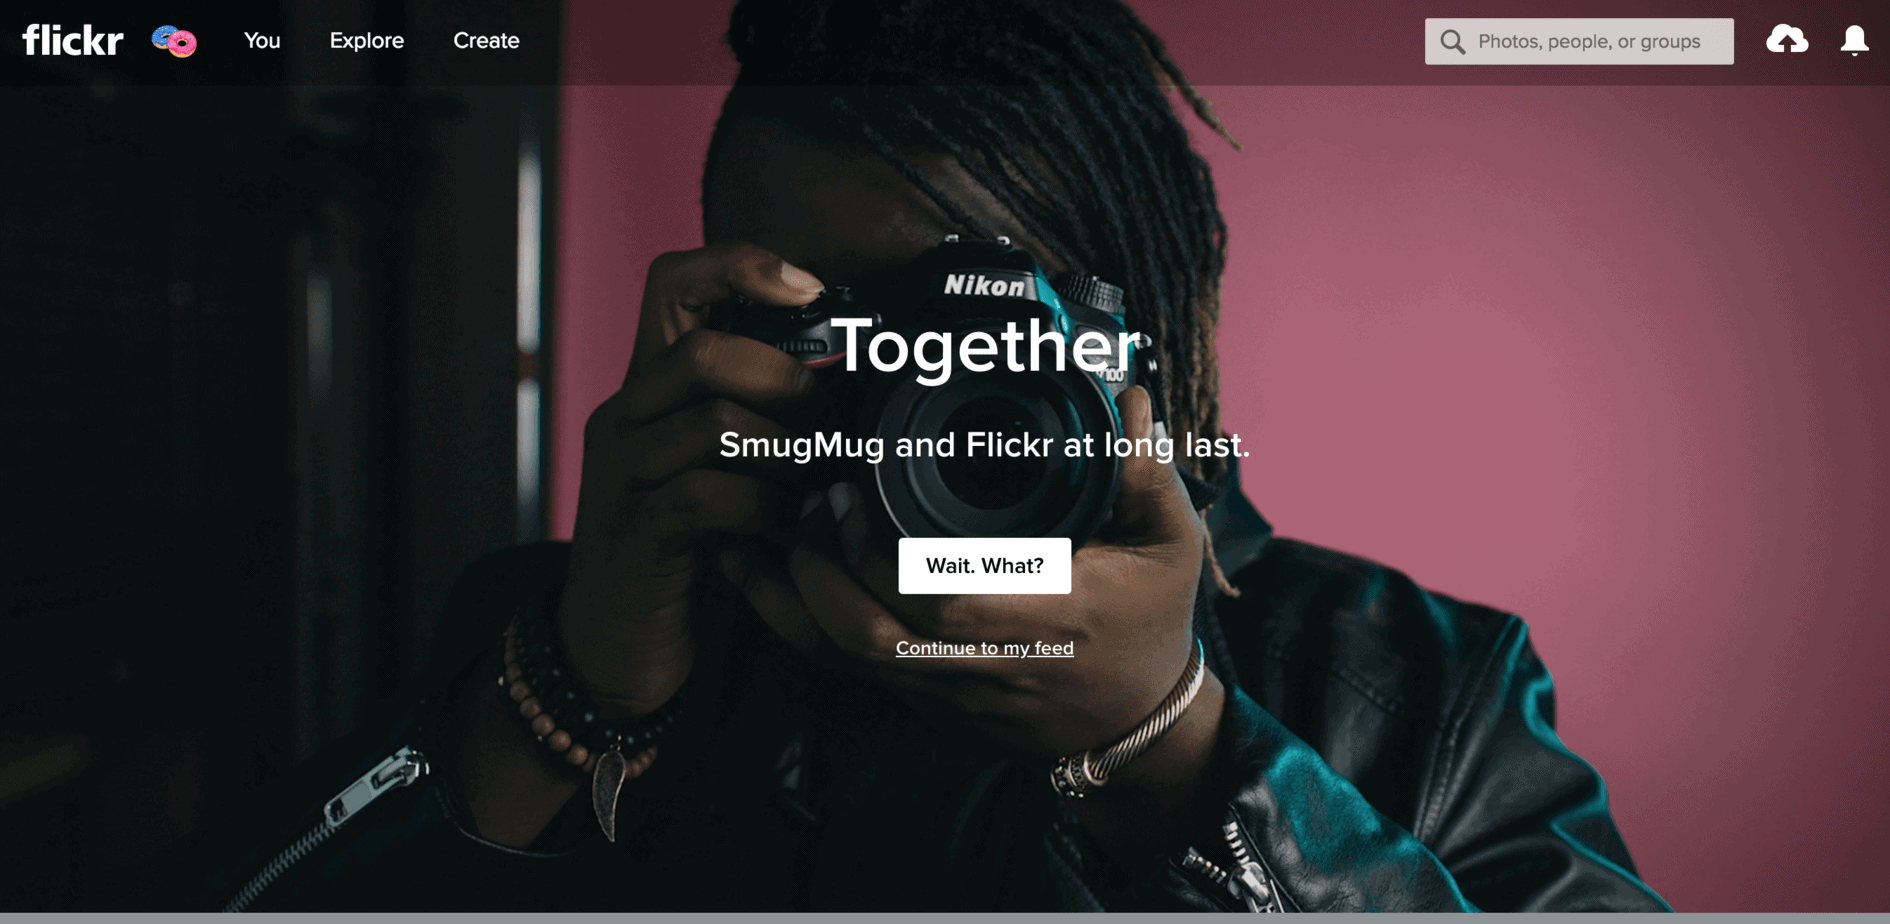 The Flickr home page, after the announcement